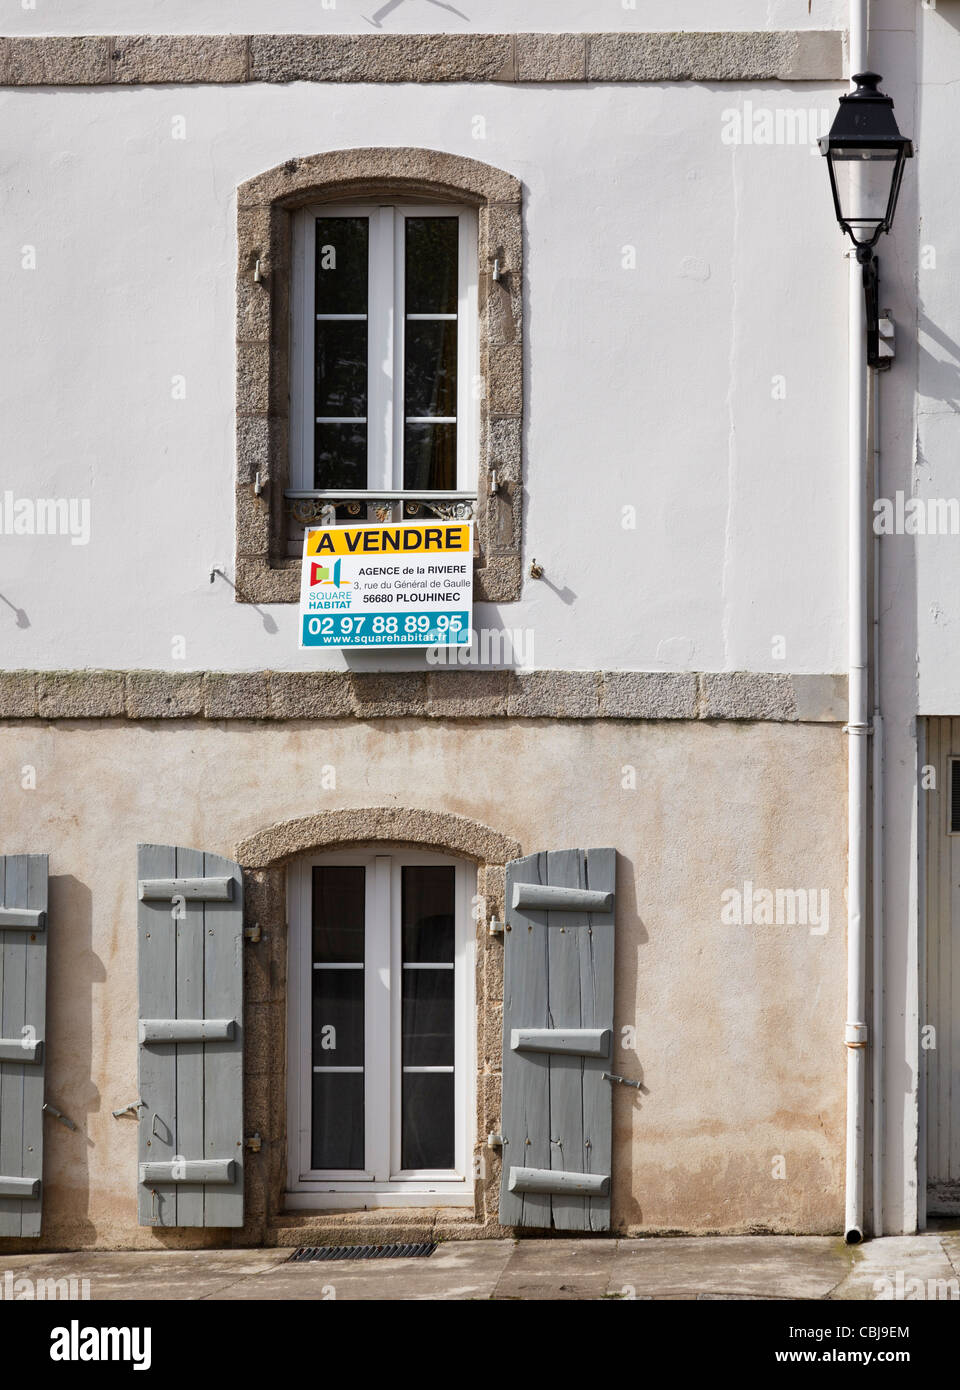 House for sale, France - Stock Image